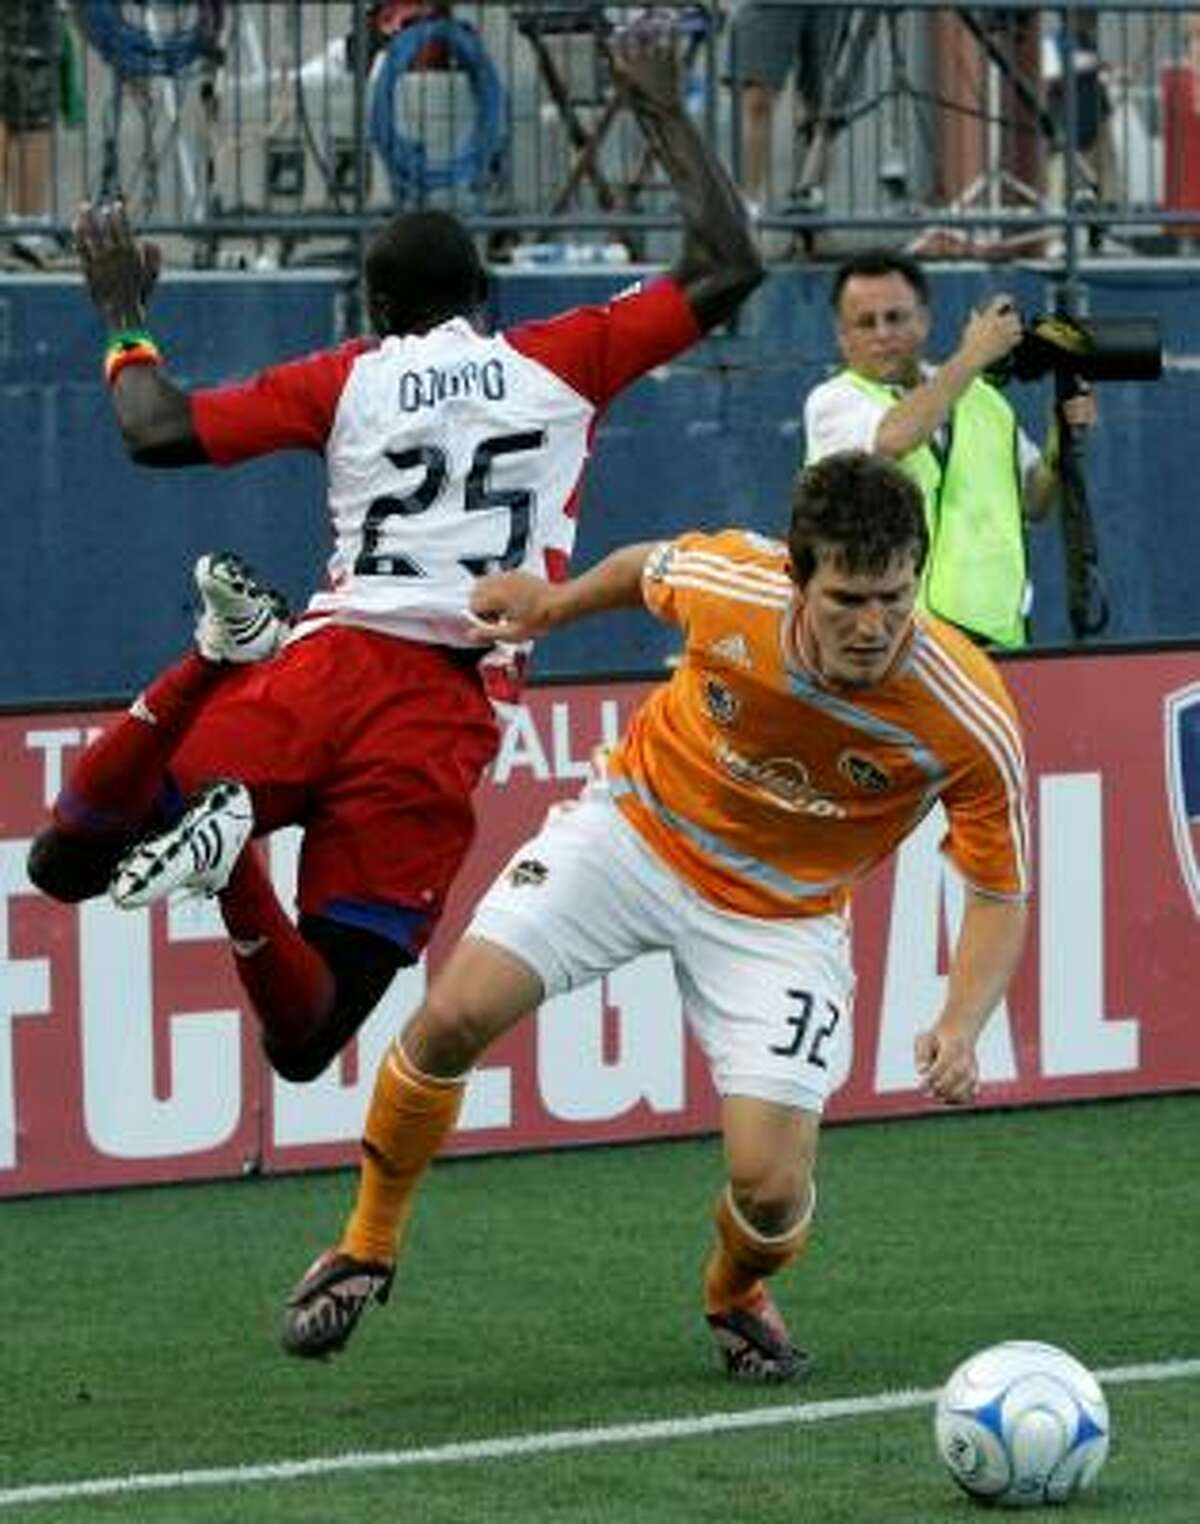 FC Dallas forward Dominic Oduro, left, is knocked out of bounds by Dynamo defender Bobby Boswell as they compete for a loose ball in the first half.